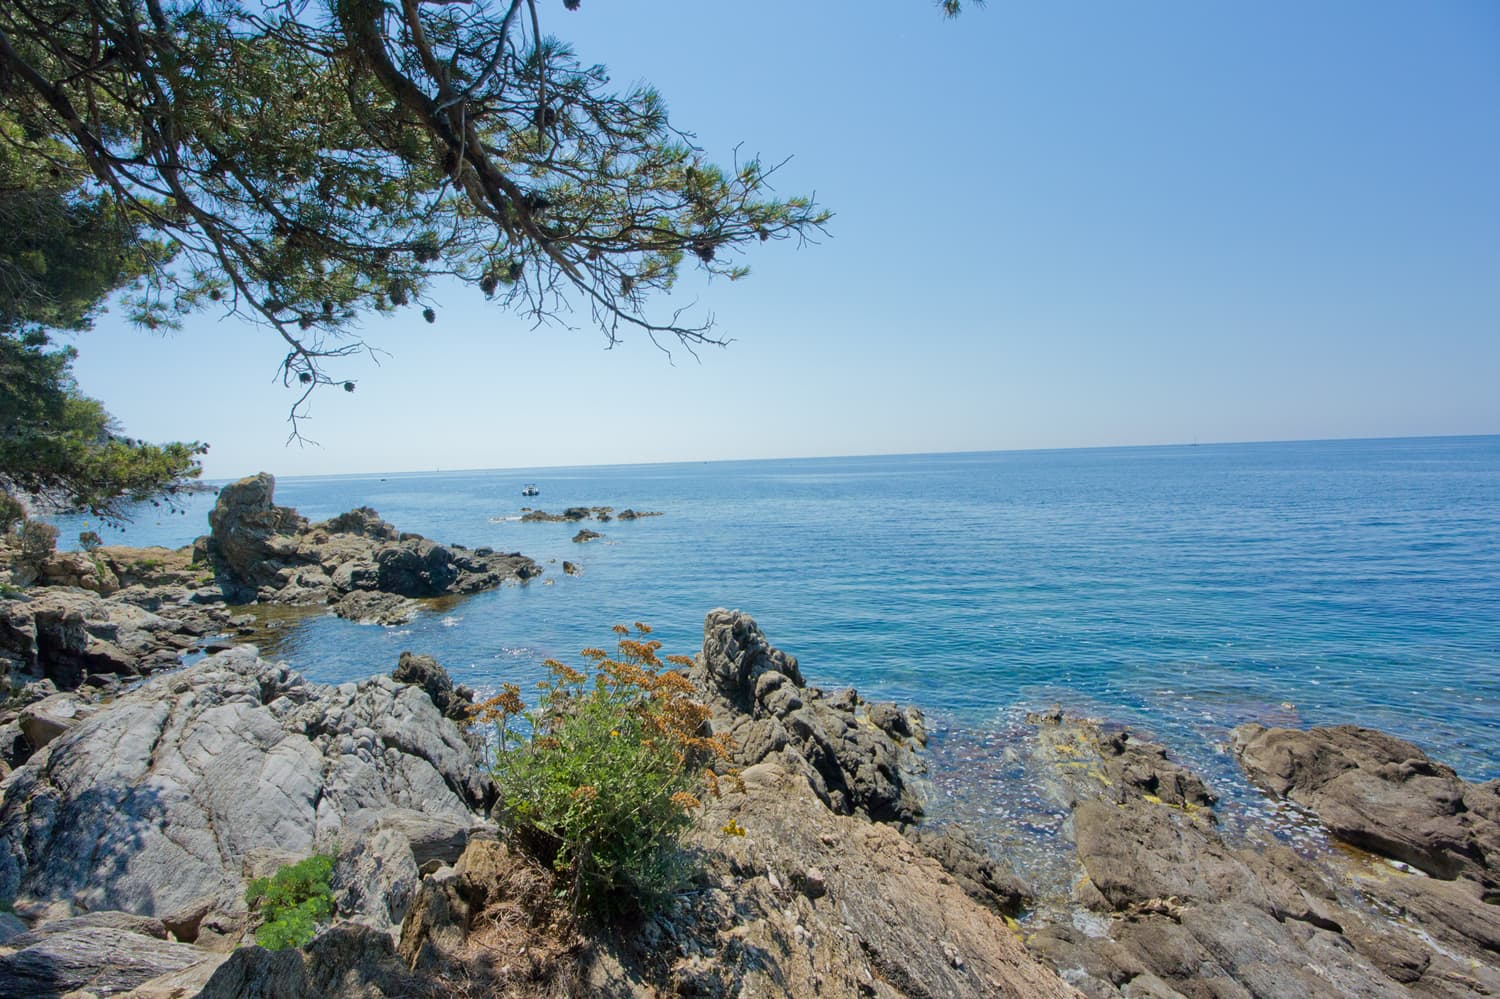 Mediterranean Sea views in Provence